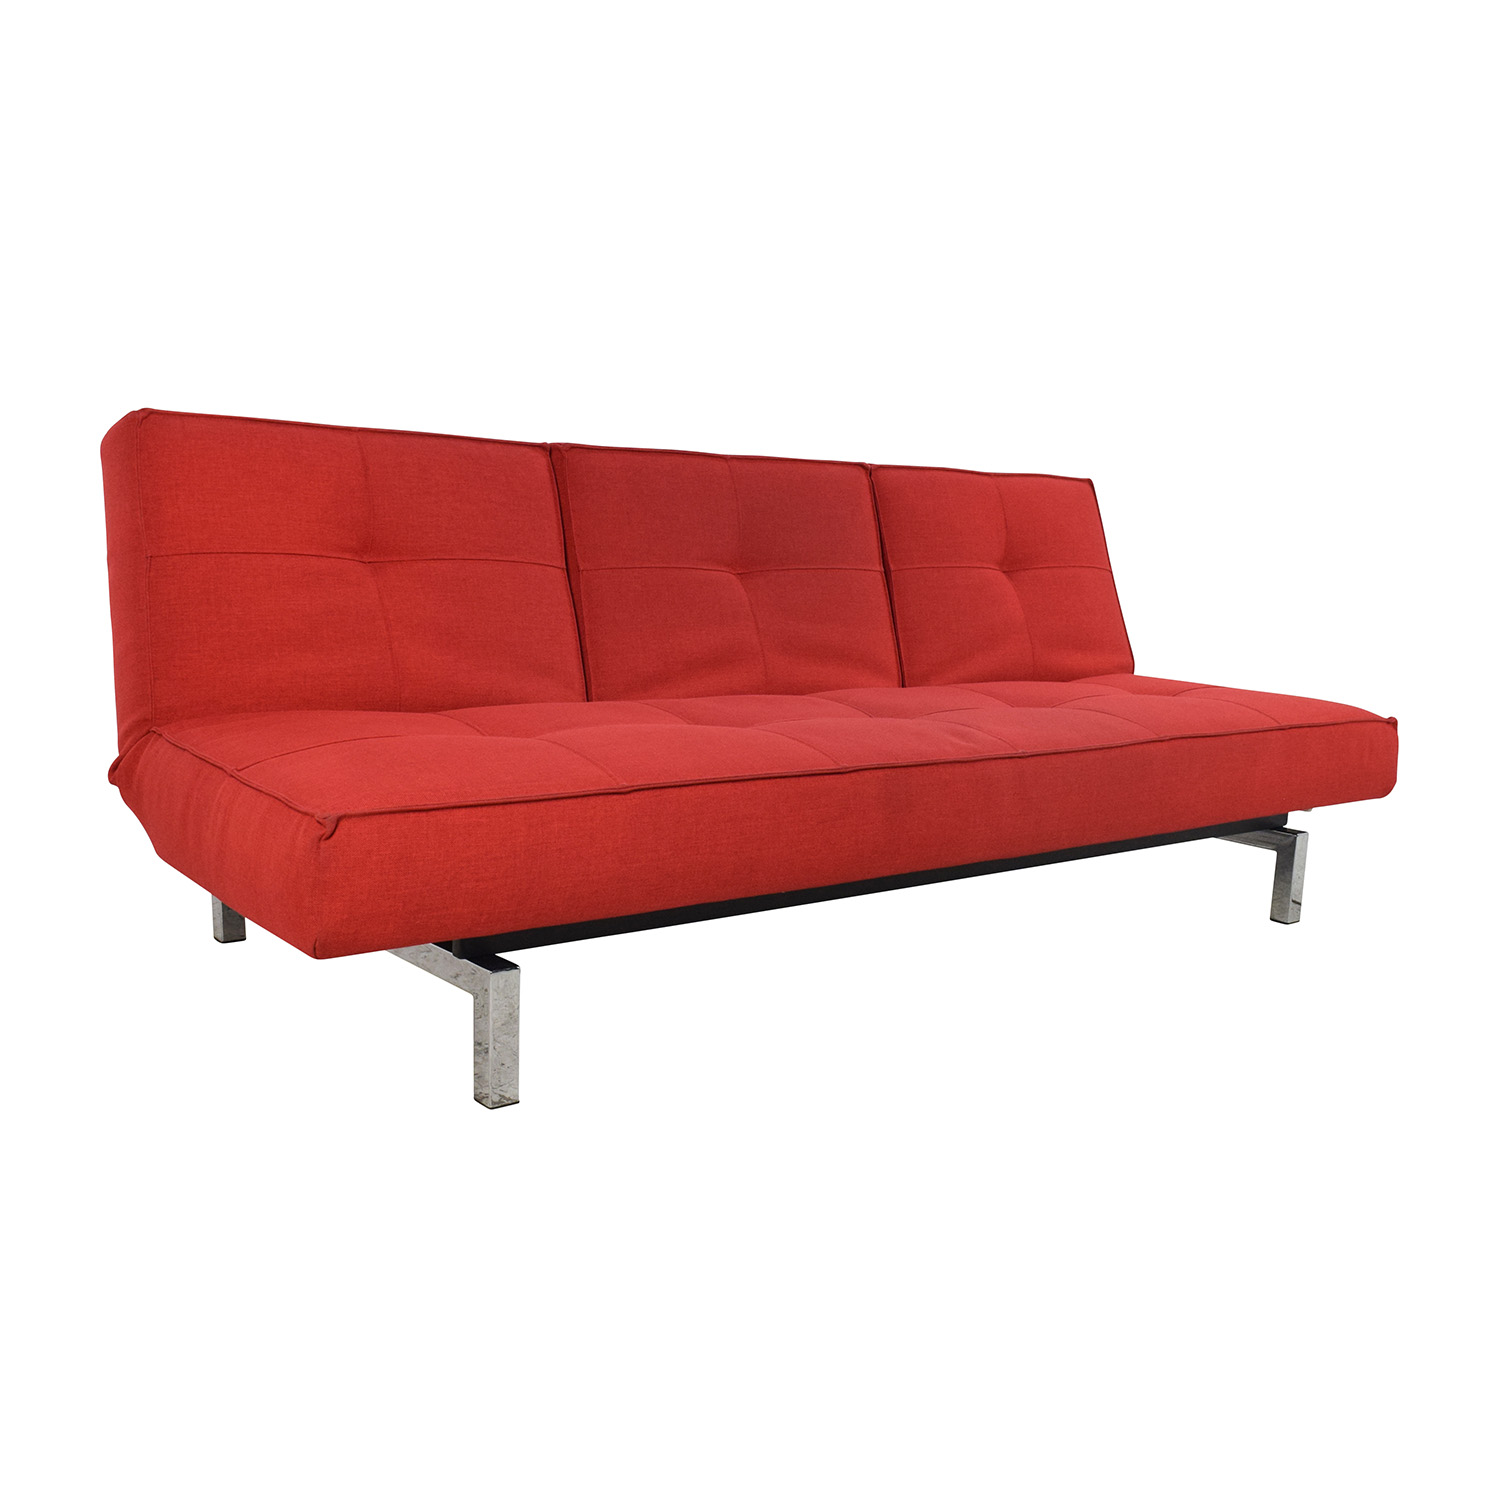 room and board sofas sectionals sofa super store fire audio 51 off eden convertible red